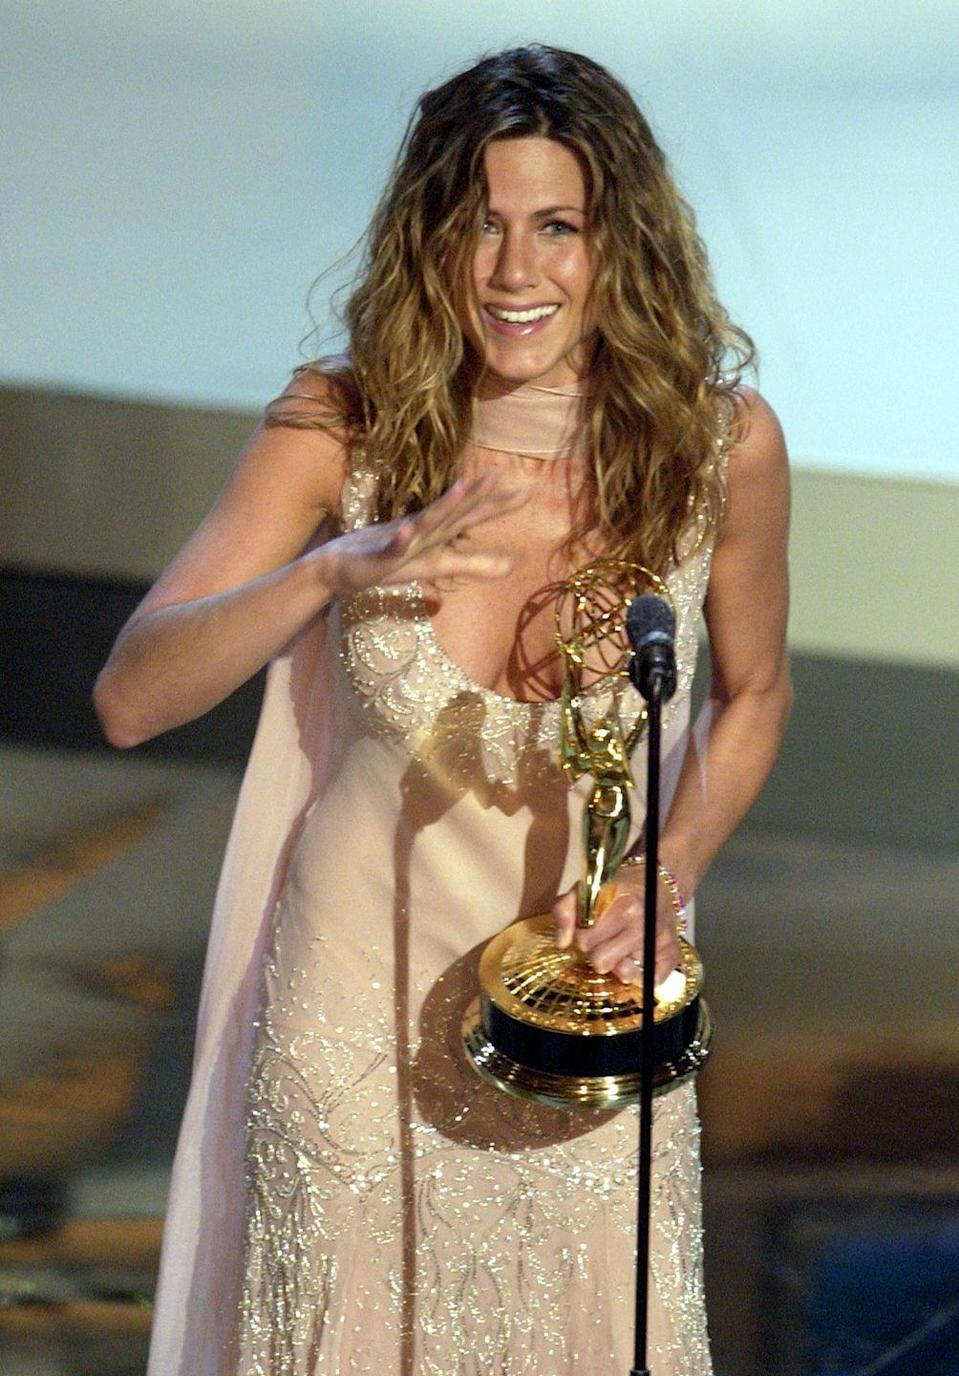 <p>Jen earned her first—and so far only—Emmy for Best Actress in a Comedy Series. The award was obviously for her performance as Rachel in <em>Friends</em>.<br></p>